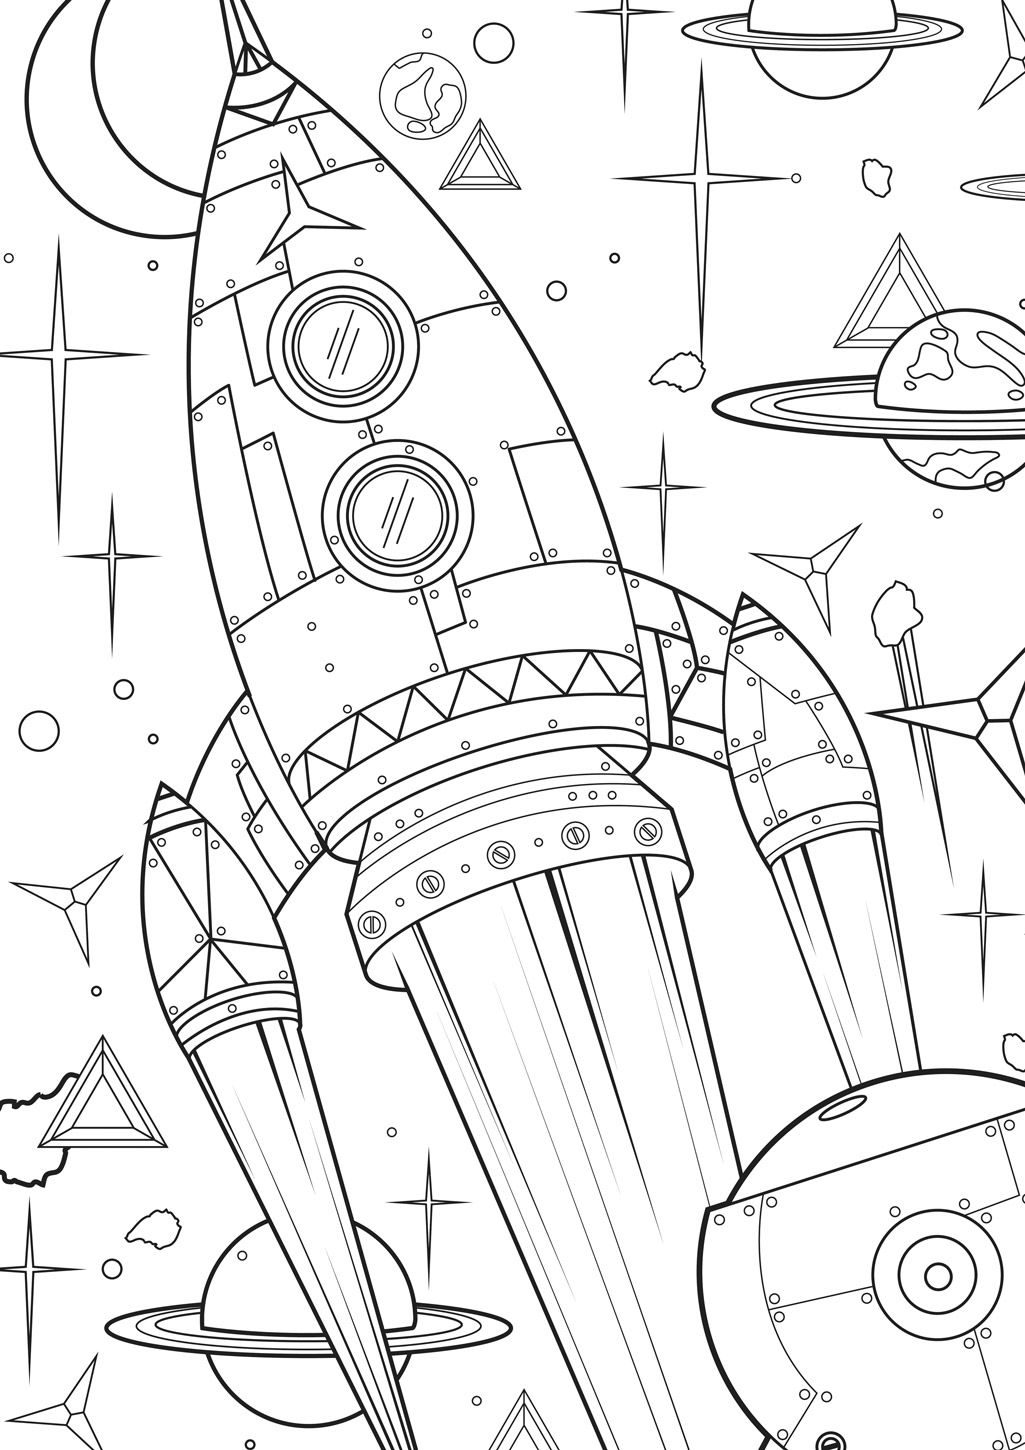 Supersized Colouring Picture: To the Stars   Planeten   Pinterest